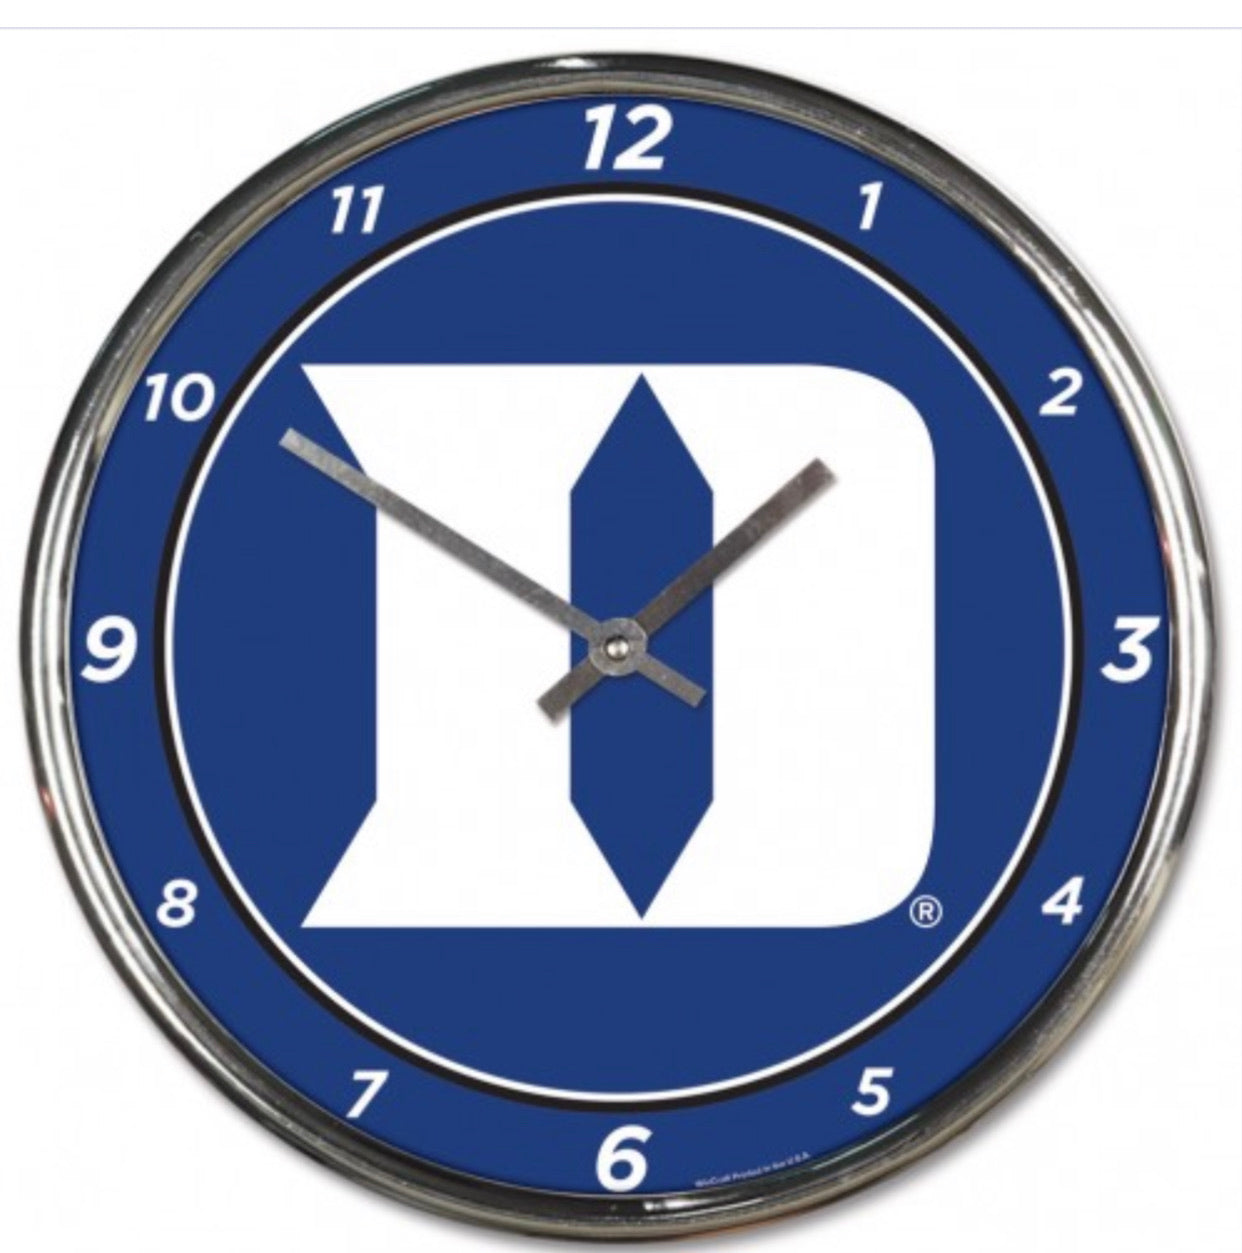 DUKE UNIVERSITY CHROME CLOCK - AtlanticCoastSports